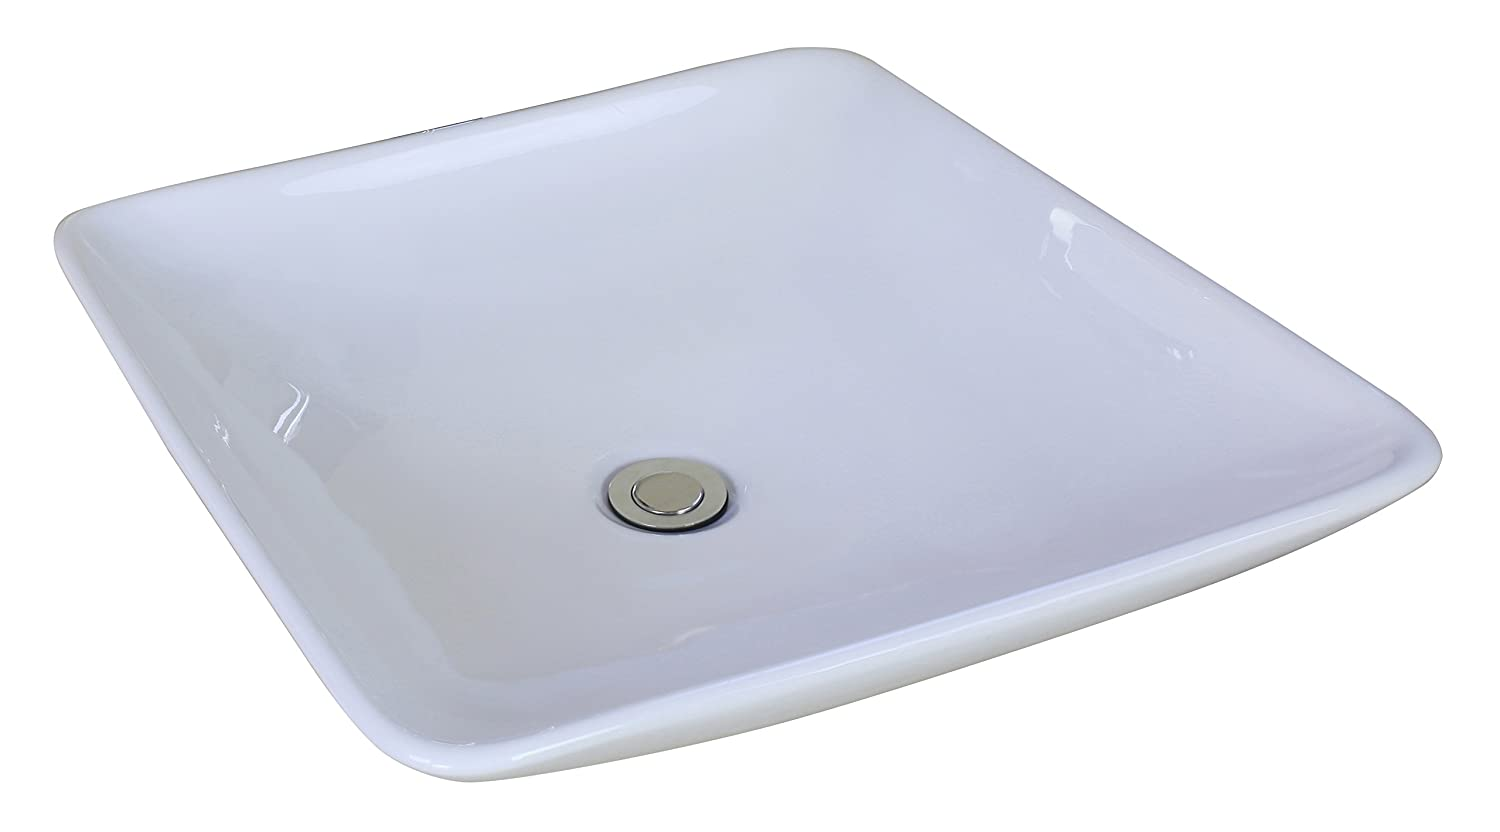 19.69-in. W x 19.69-in. D Above Counter Square Vessel In White Color For Deck Mount Faucet IMG Imports Inc. AI-1-1306